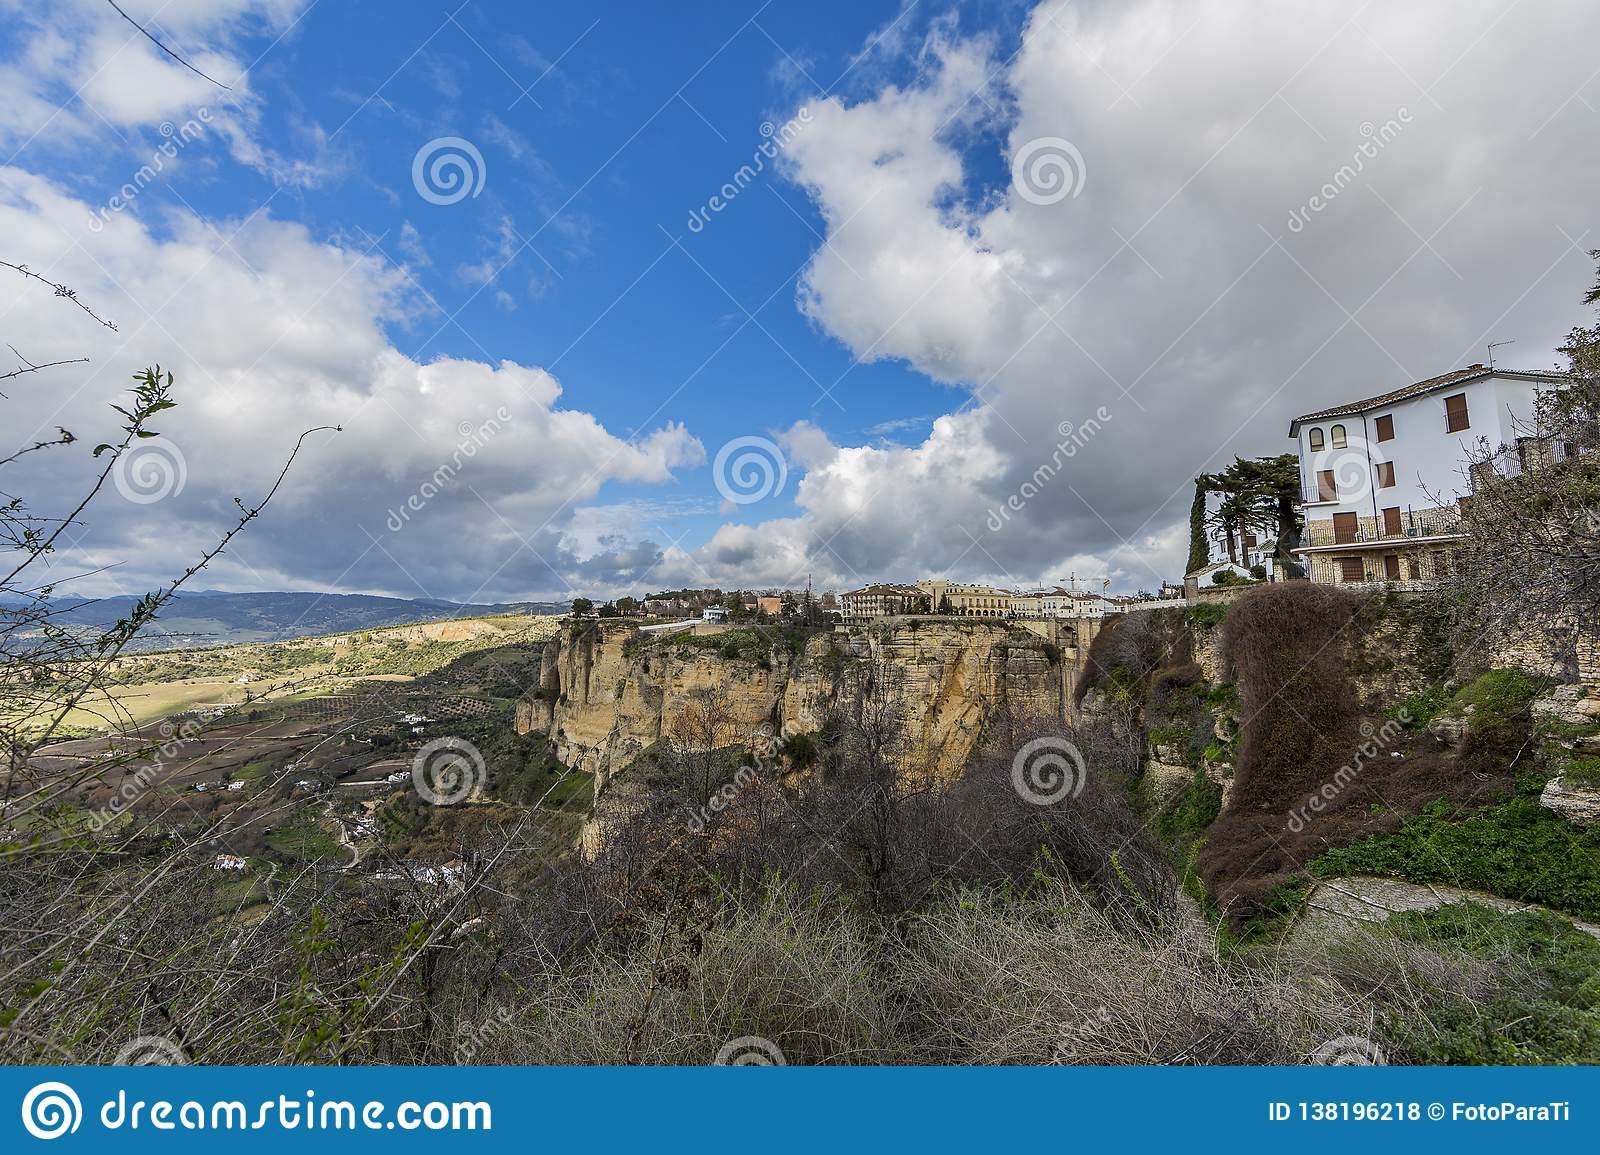 Beautiful panoramic view of the city of Ronda over the mountain with its valley with farmland